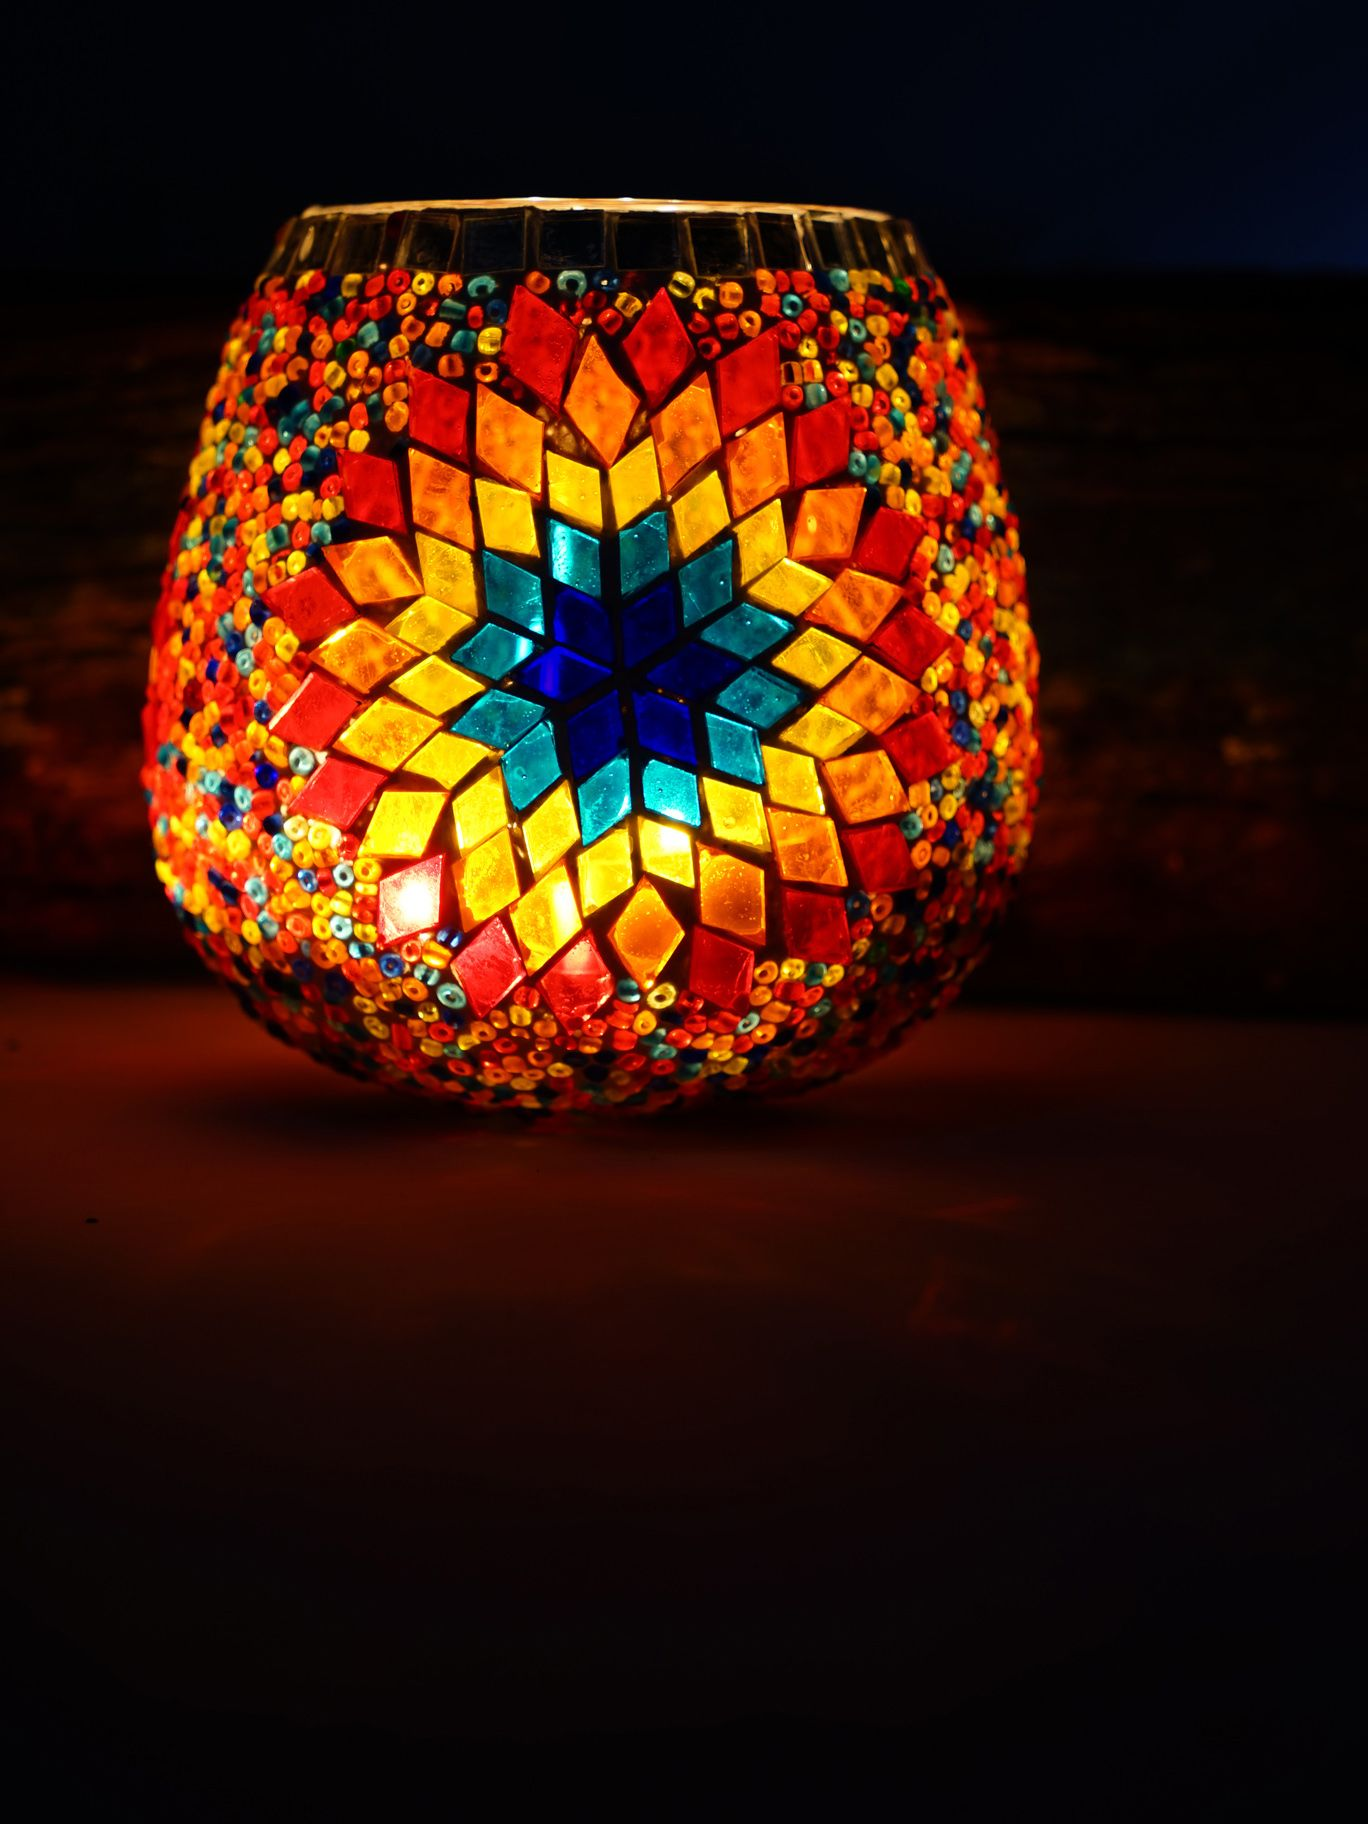 Mosaic-Candle-Holder-large-star-multi-coloured-with- & Mosaic-Candle-Holder-large-star-multi-coloured-with-candle.jpg (1368 ...